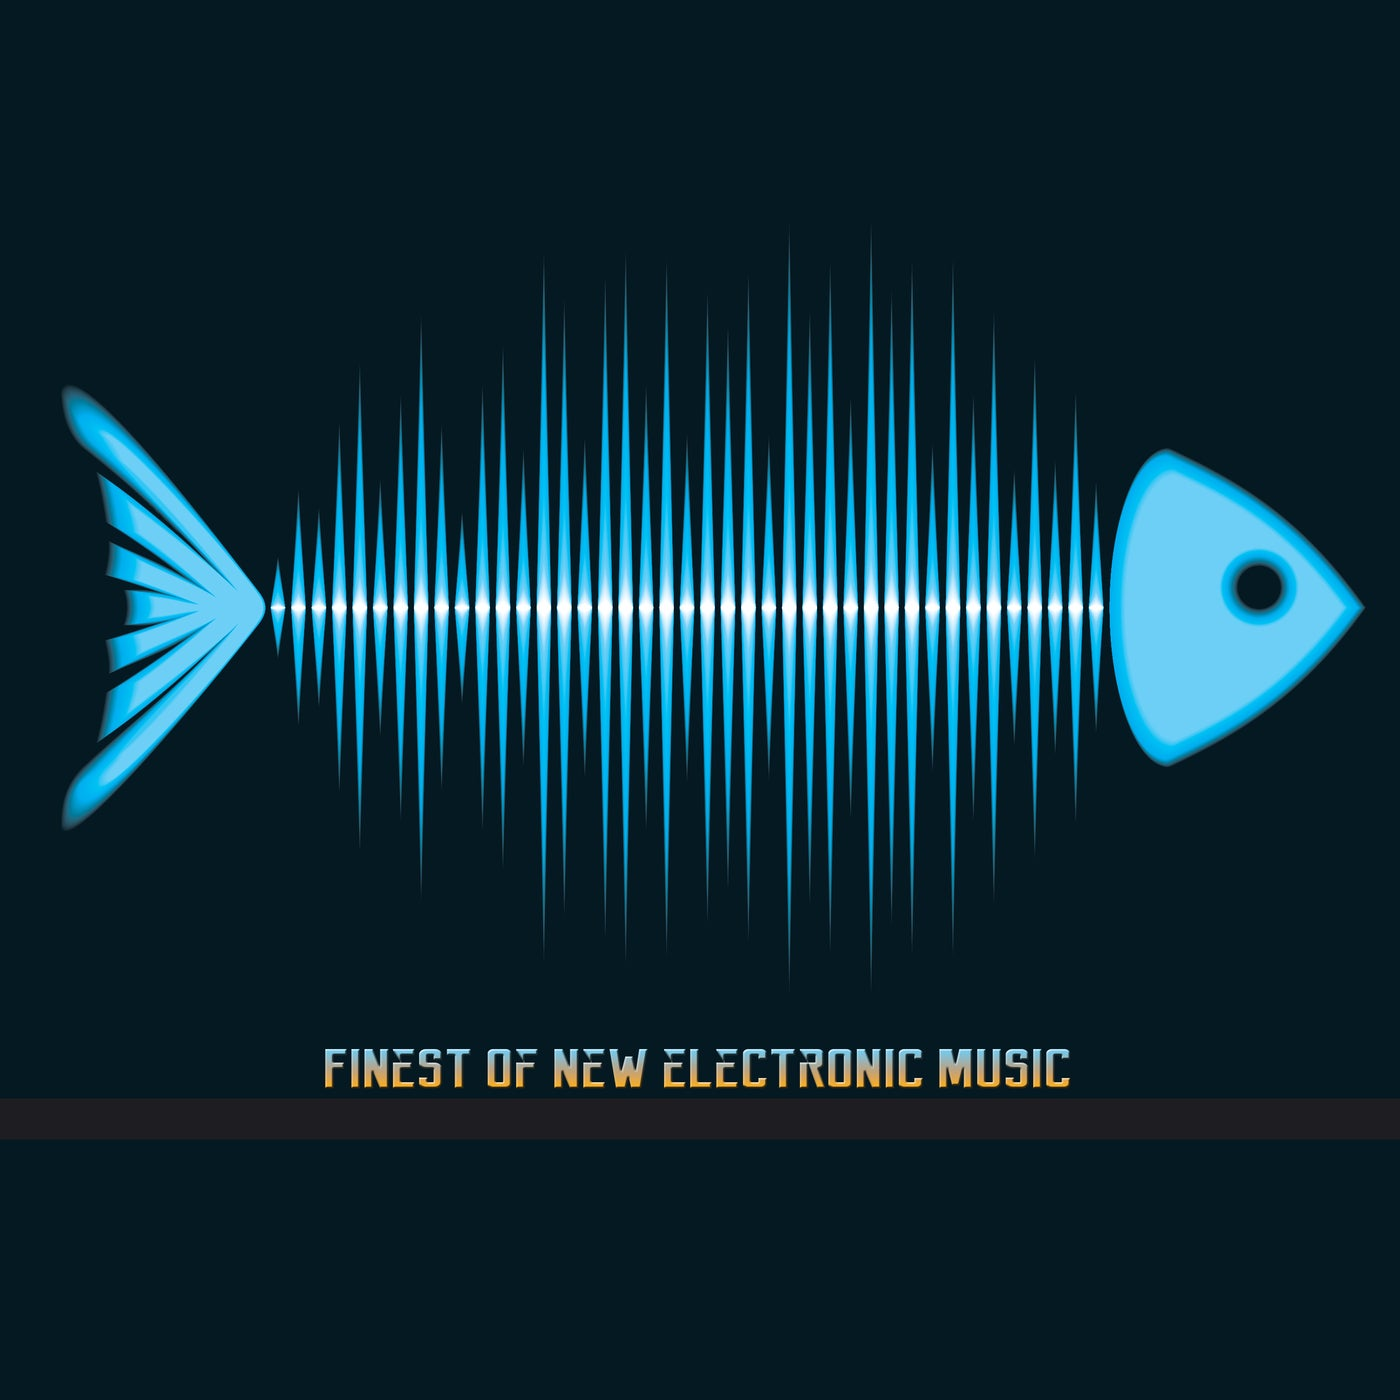 In the Mood psytrance mix on the Finest of New Electronic Music